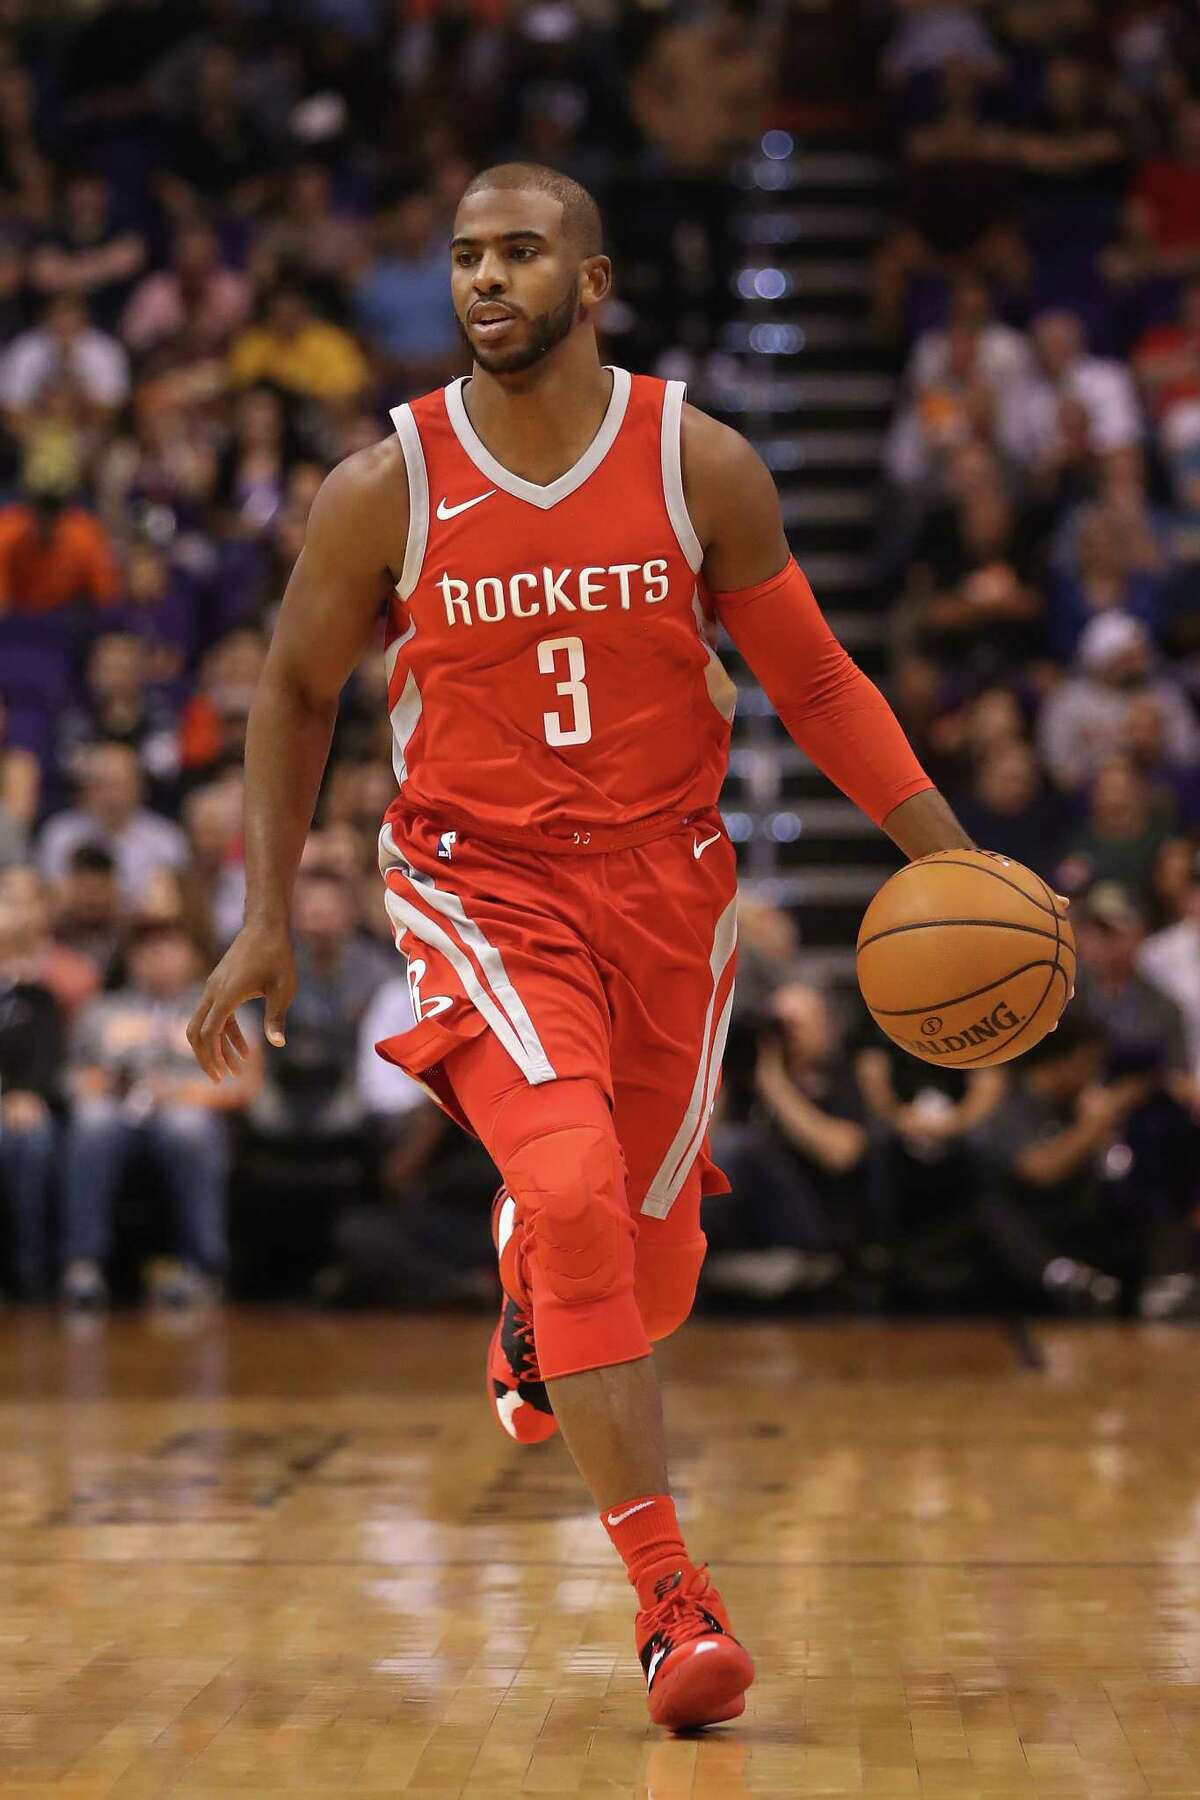 Chris Paul's return from injury means the Rockets' rotation will adjust and that most players will have to settle for playing fewer minutes.